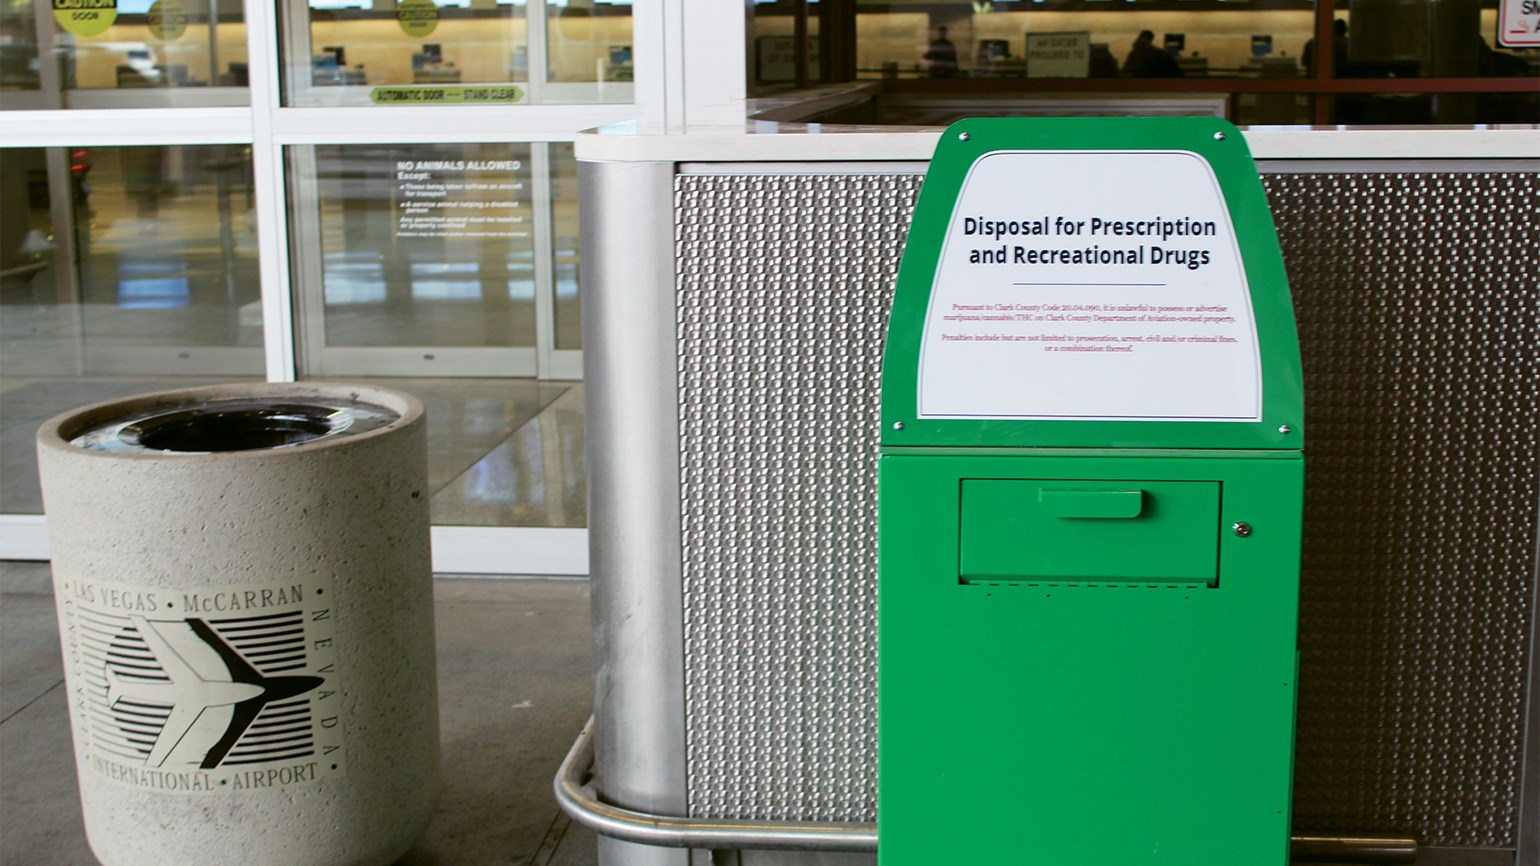 Marijuana 'amnesty boxes' installed at Las Vegas airport